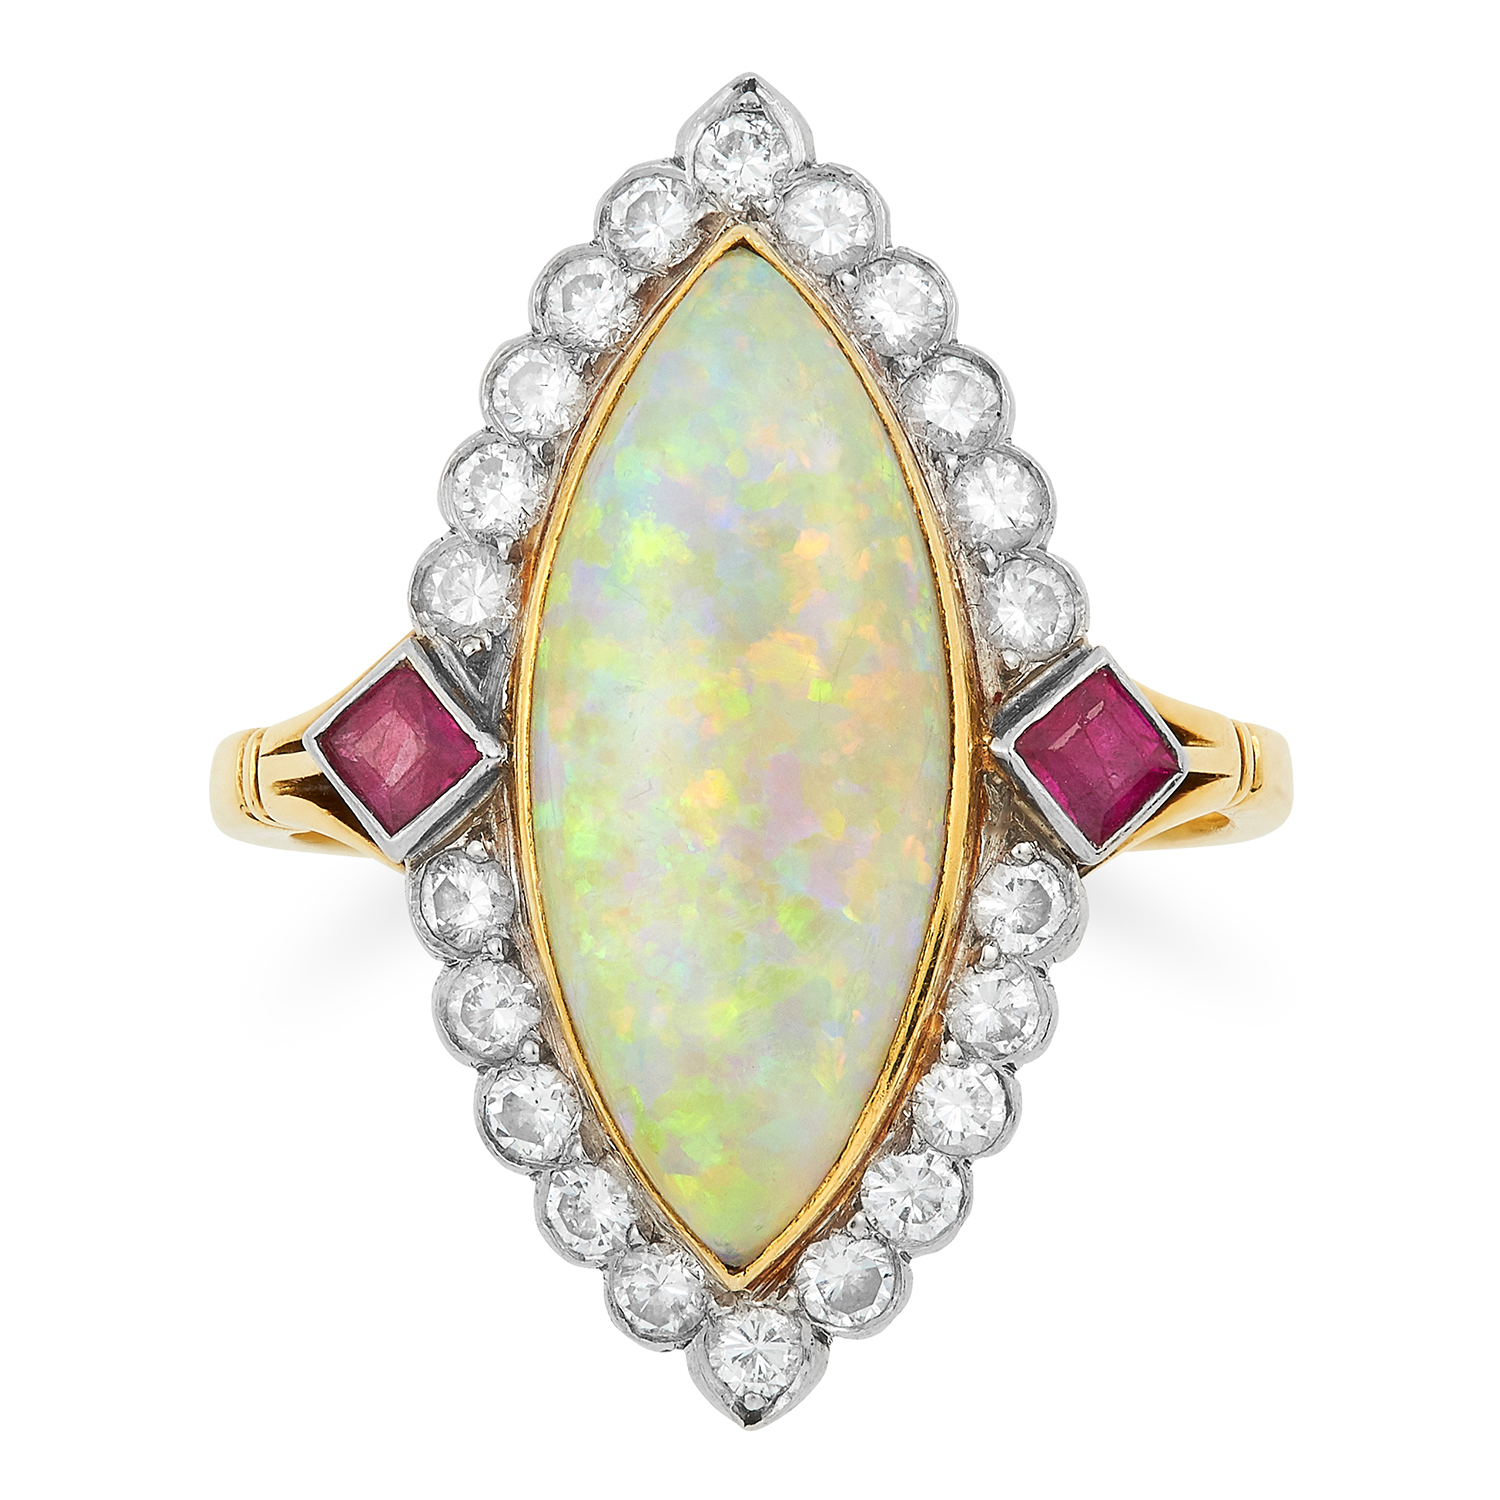 VINTAGE OPAL, DIAMOND AND RUBY CLUSTER RING set with a cabochon opal in a border of round cut